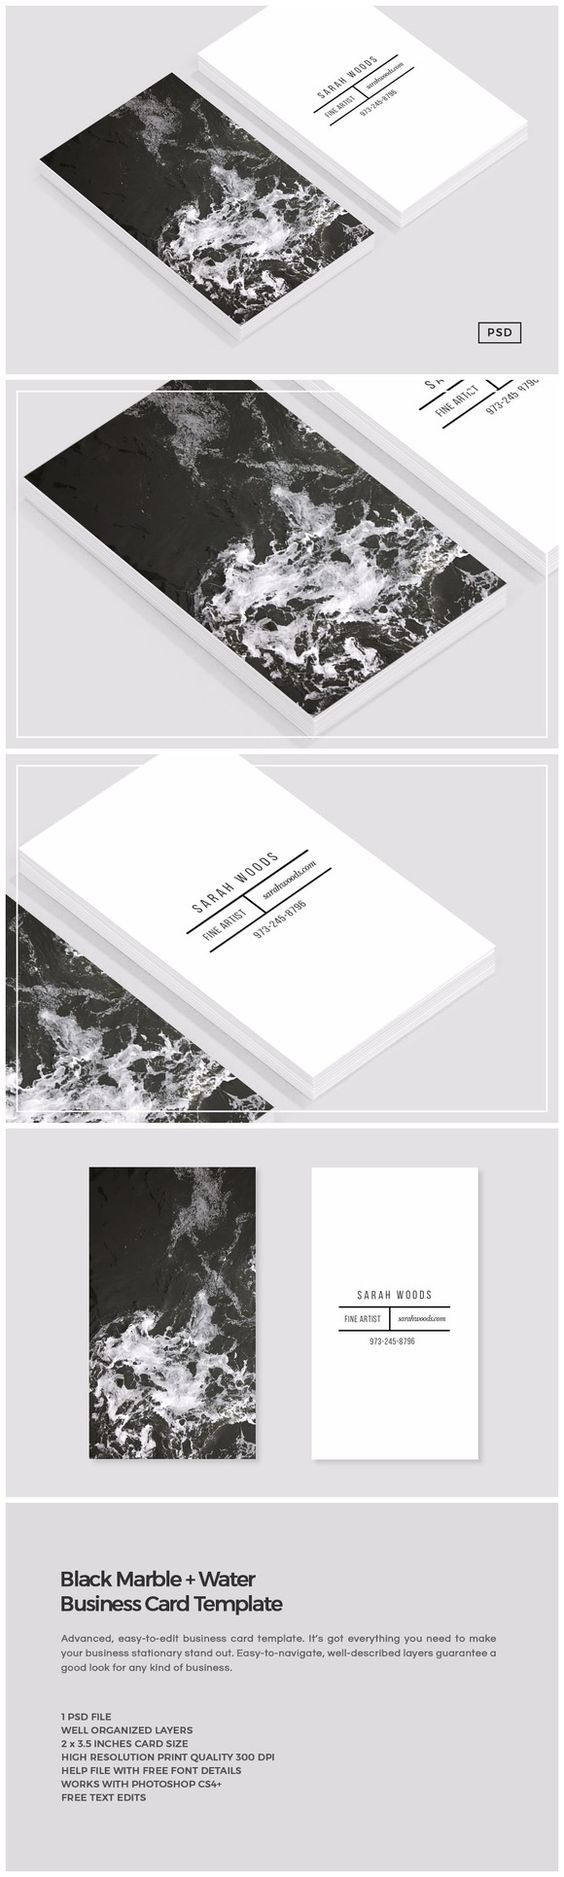 Black Marble Water Business Card Template Carte D Affaire Cartes De Visite Originales Modele Carte De Visite